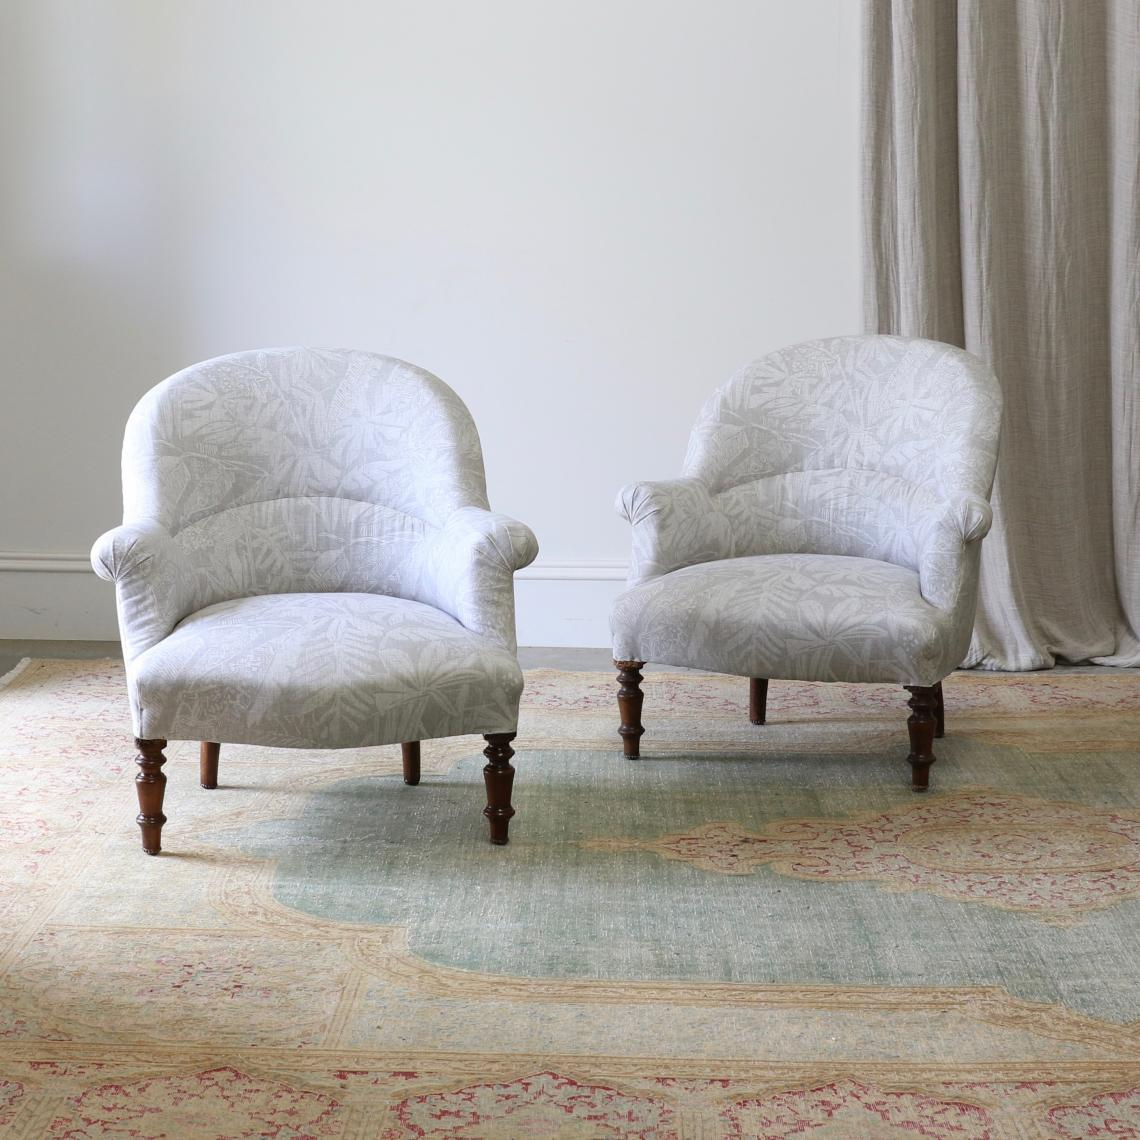 113-98 - French Tub Chairs